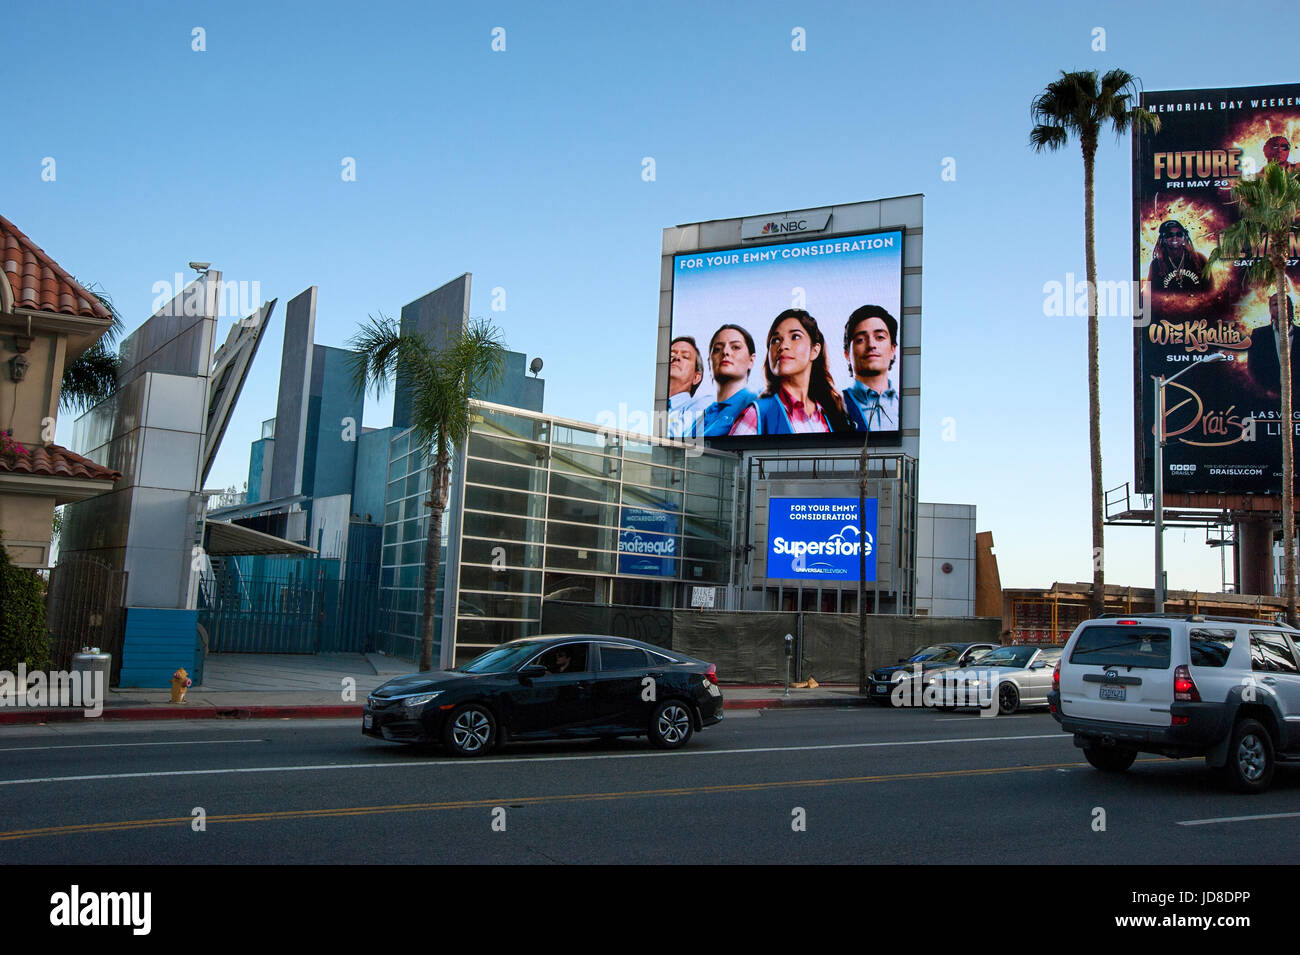 Dighital billboard on the Sunset strip promoting NBC televsion show Super Store in Los Angeles, CA - Stock Image